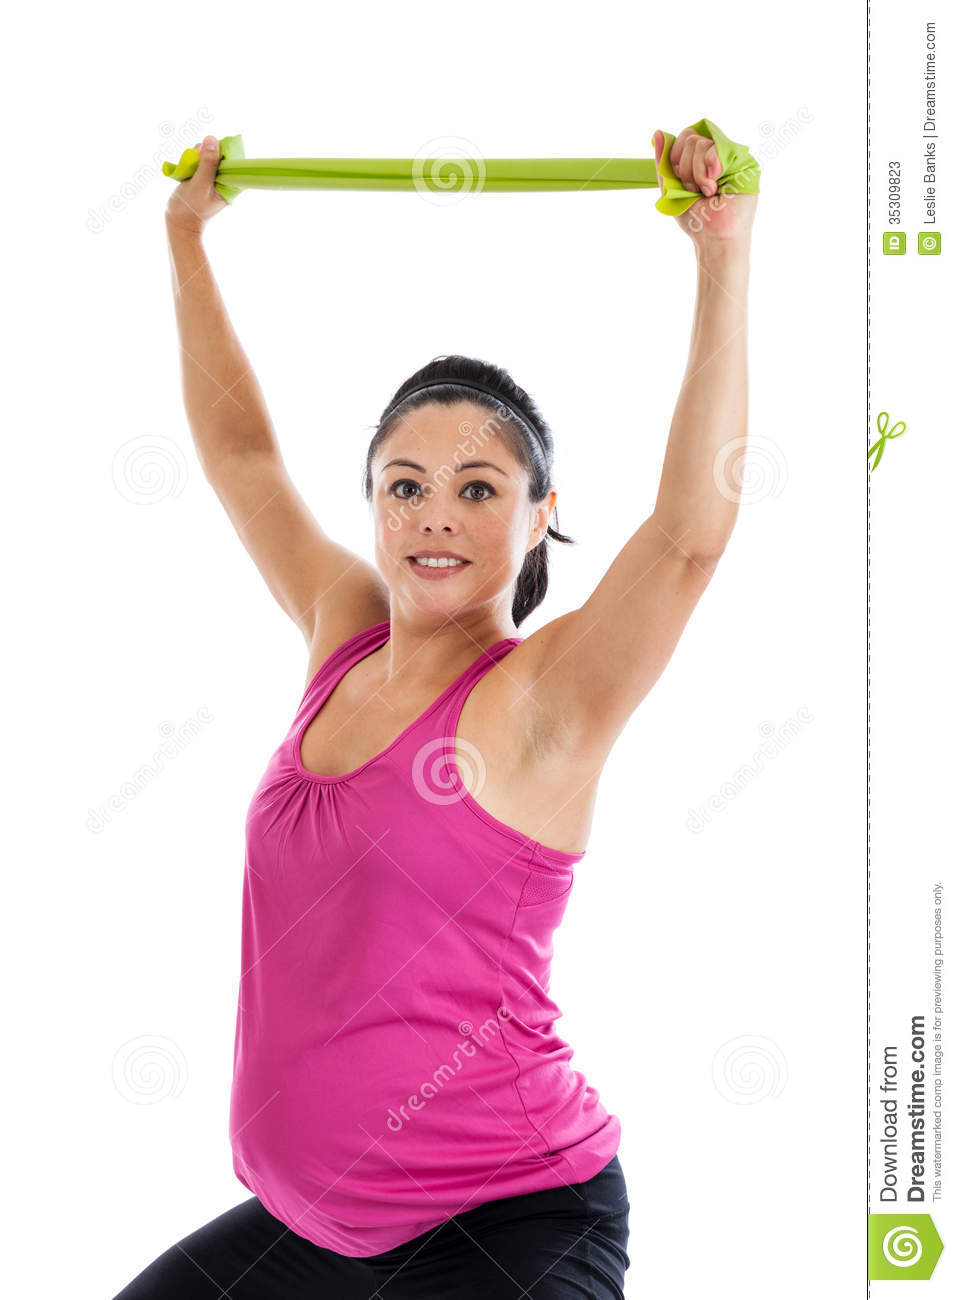 Pregnant Woman Exercising With Resistance Band Stock Image ...